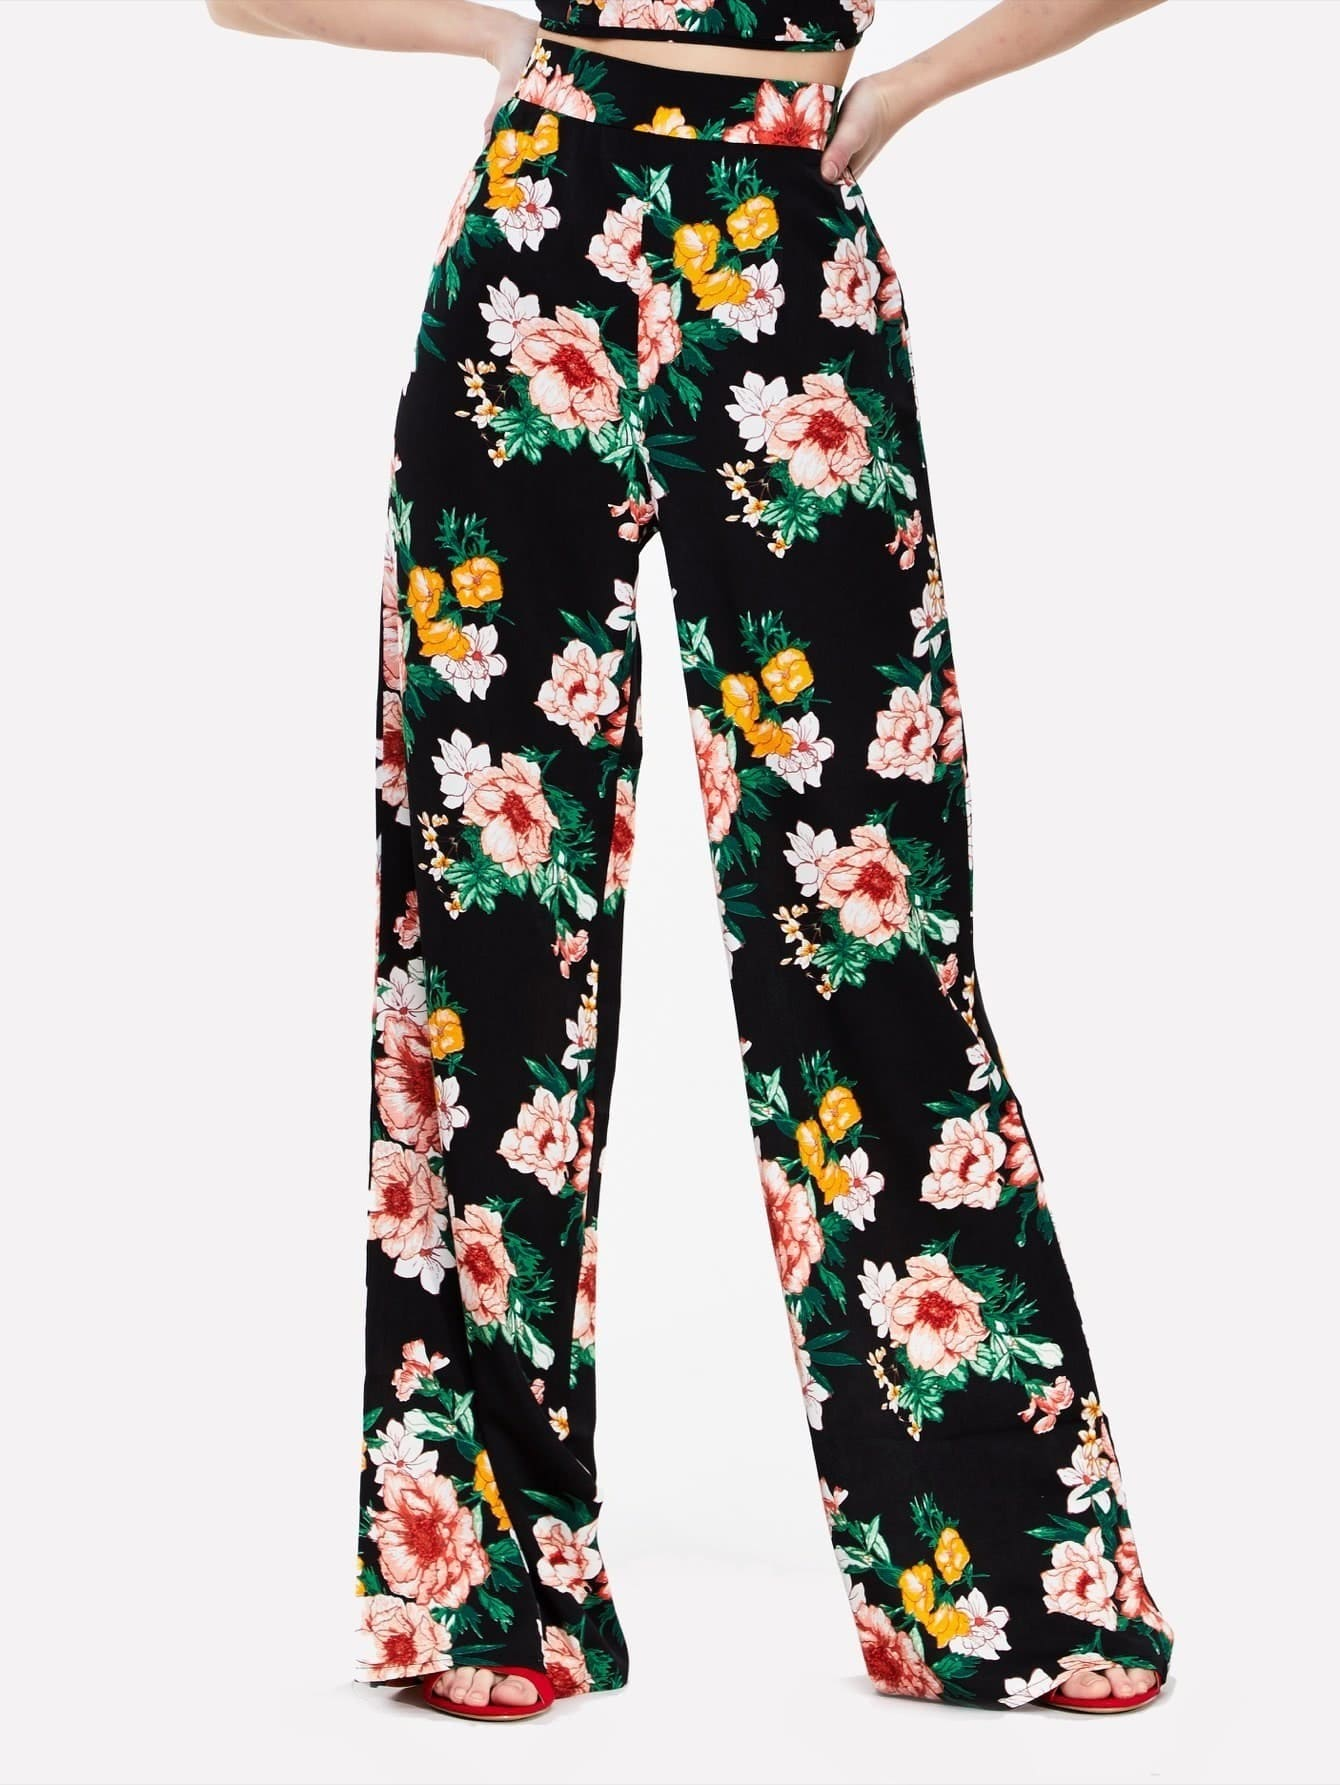 Floral Print Wide Leg Trousers floral print wide leg trousers